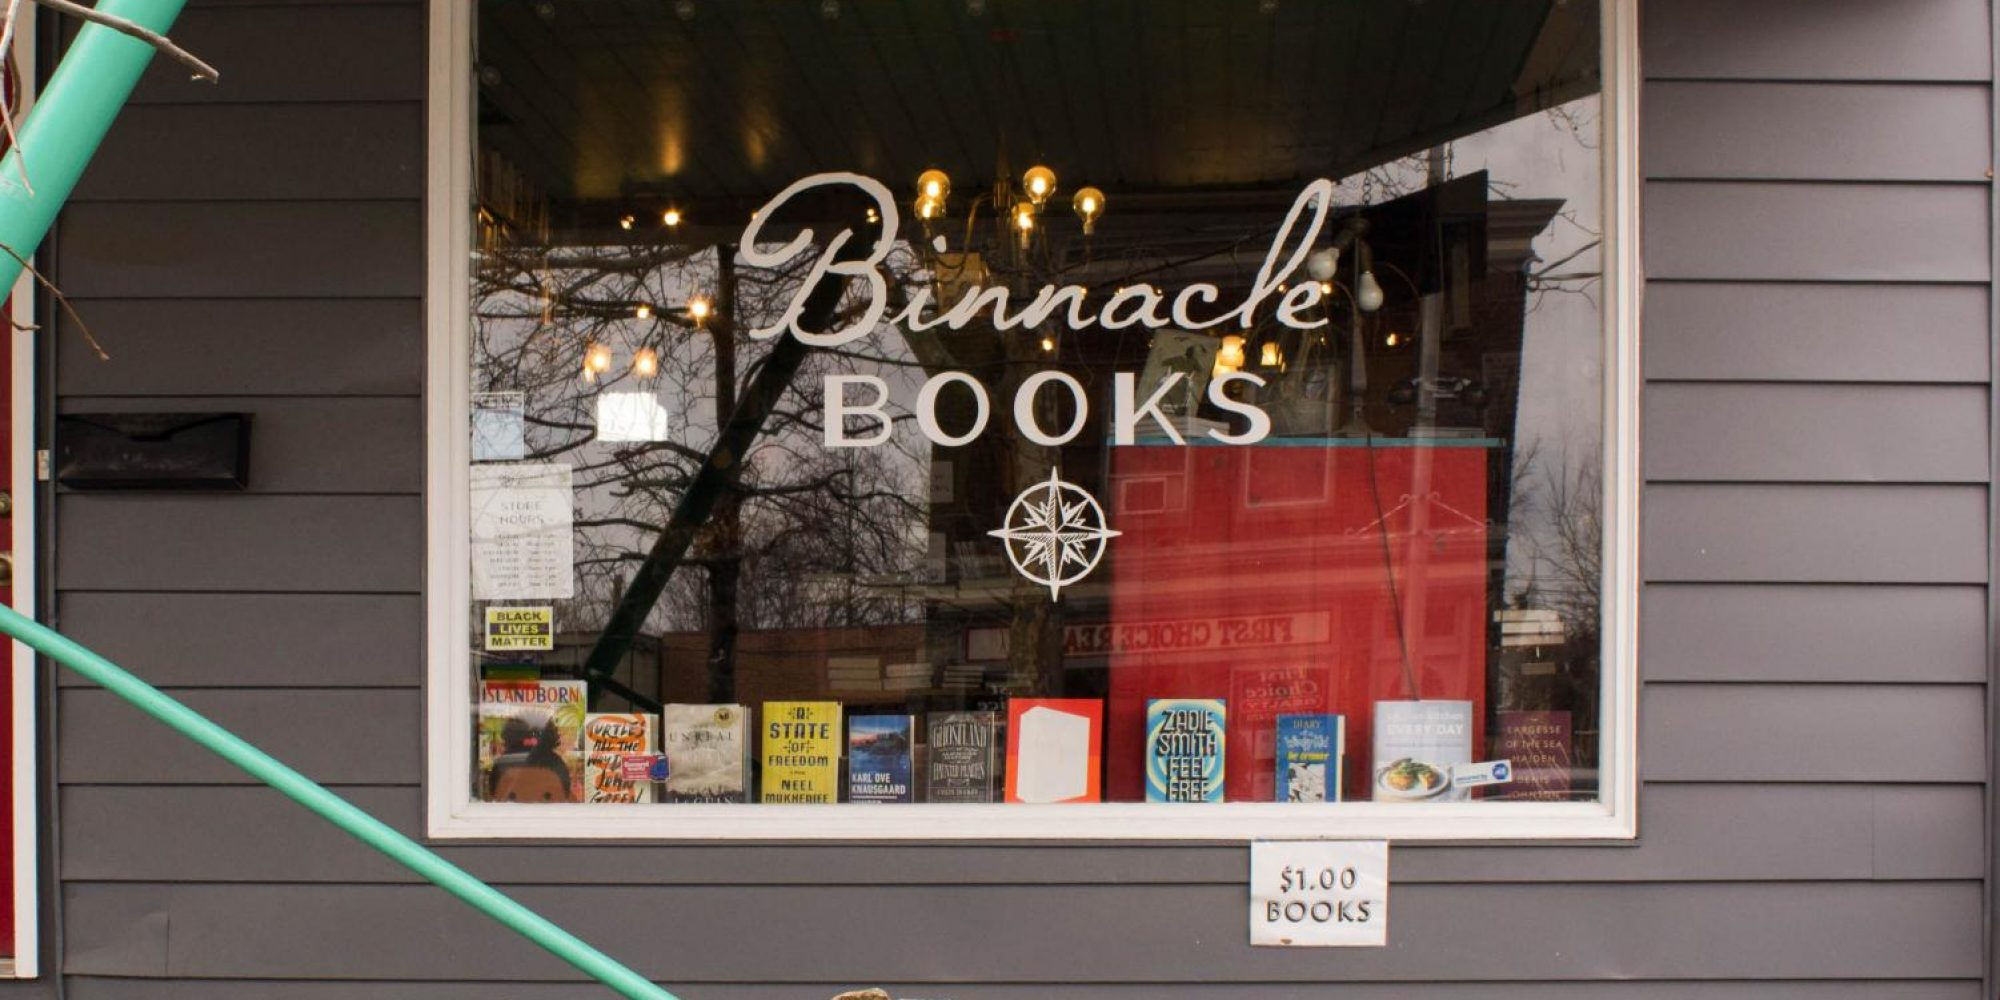 A local bookstore, Binnacle Books, sells new and used titles at their shop on Main Street in Beacon, NY.